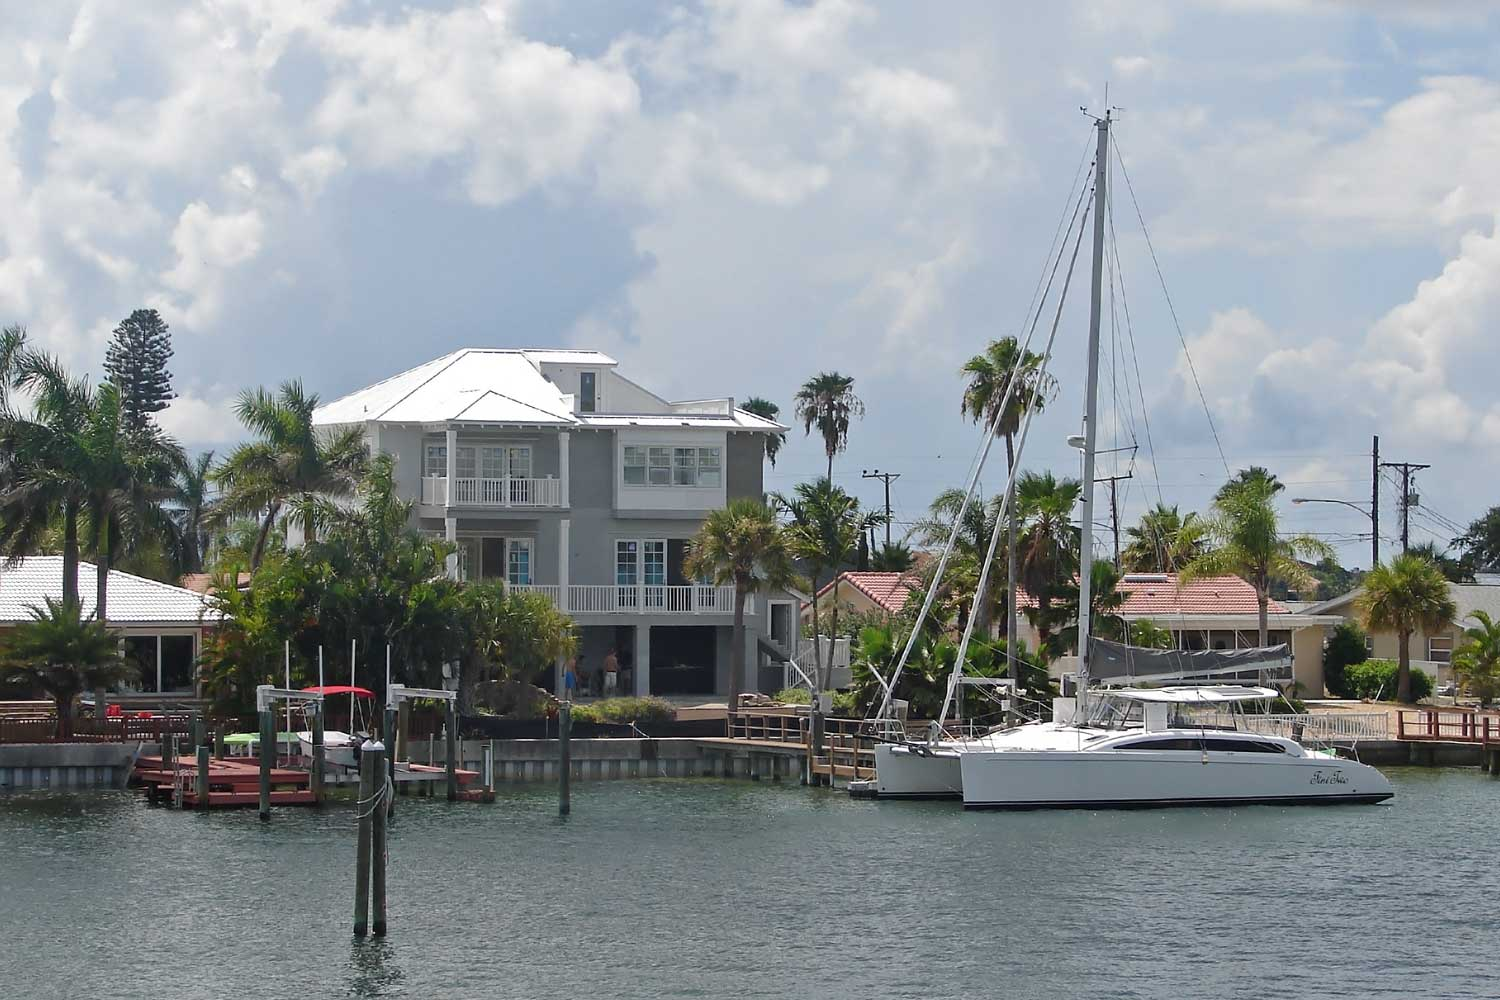 This three level beach residence is located on a canal off the Gulf of Mexico.